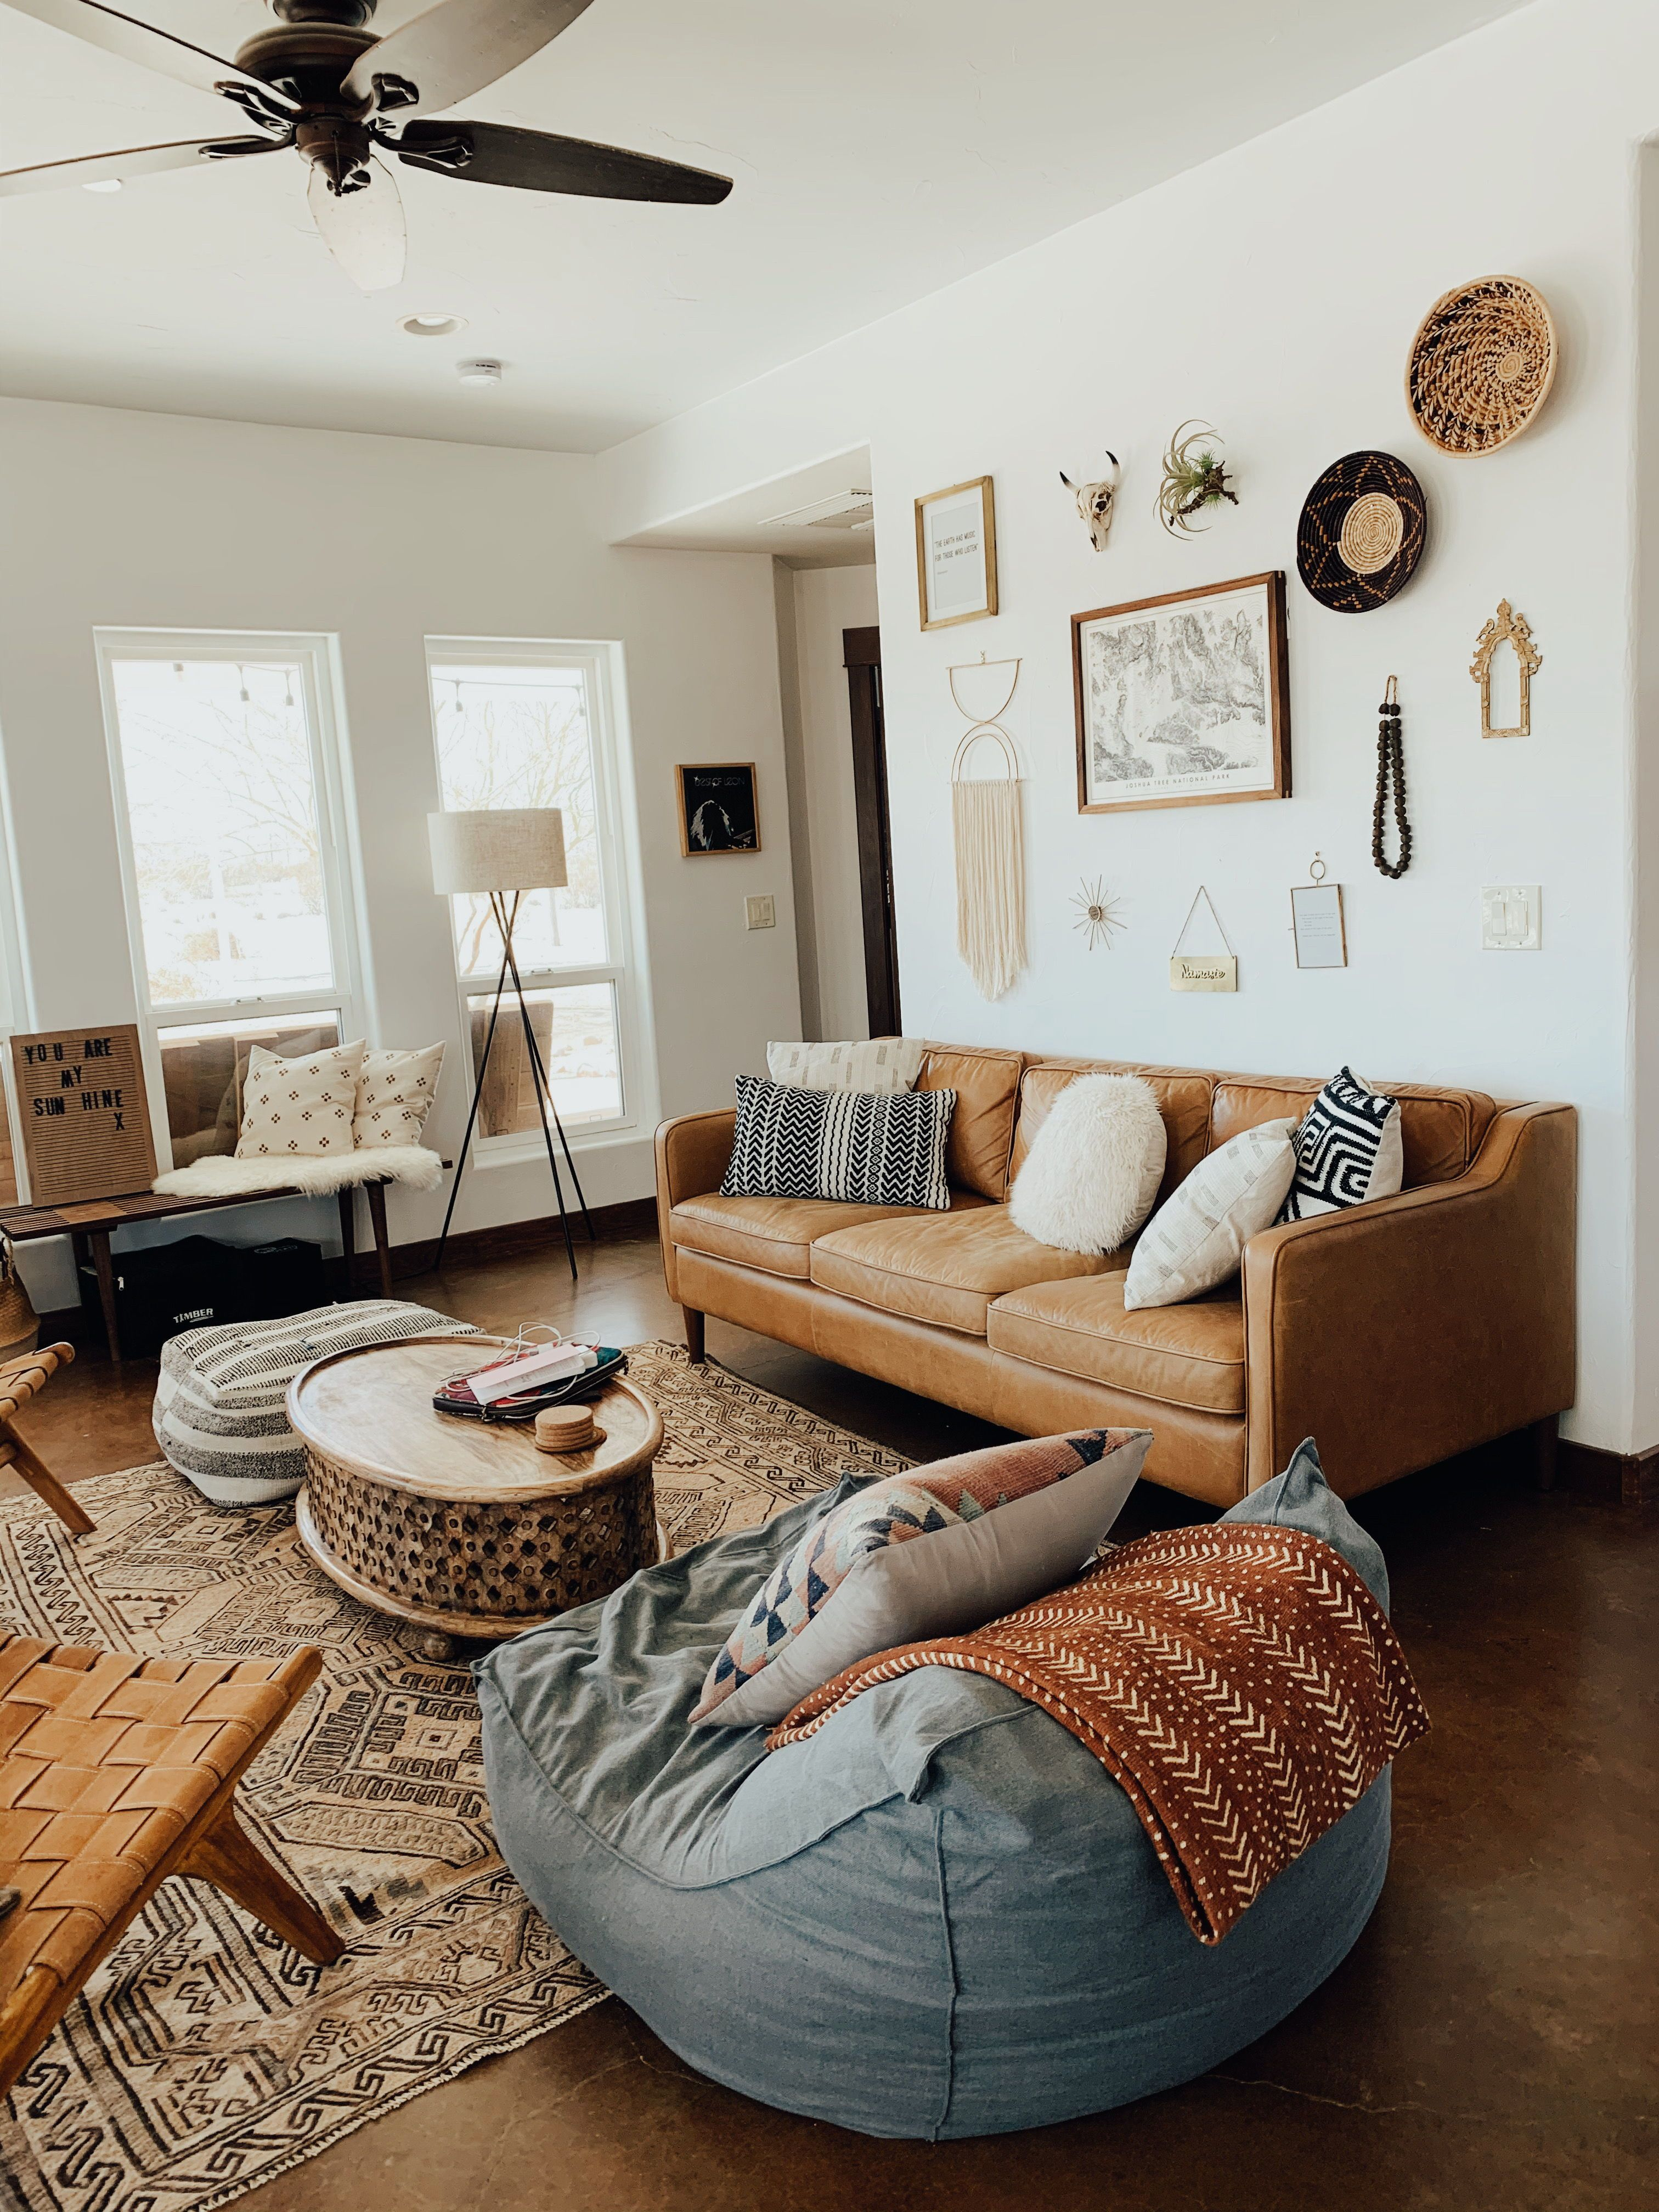 Best home decor ideas: decorating homes, room decor, and decor inspiration. Here's what I did to set up a healthy environment for our home, keep it virus free, and how you can detox your life too. #home #decor #room #design #diy